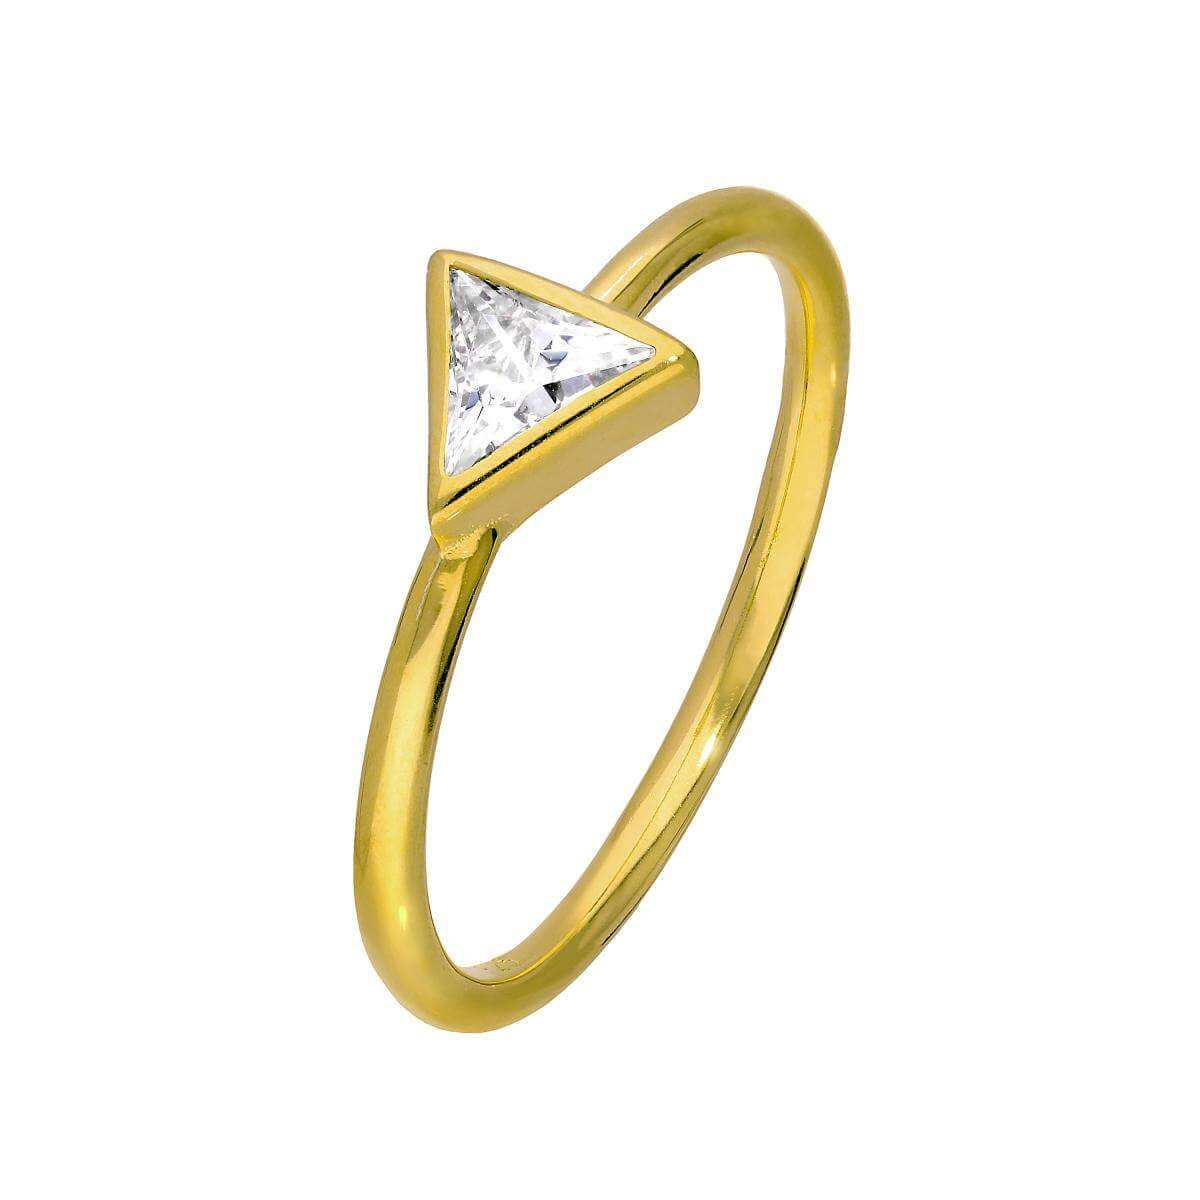 Gold Plated Sterling Silver & CZ Crystal Triangle Ring Size J - W